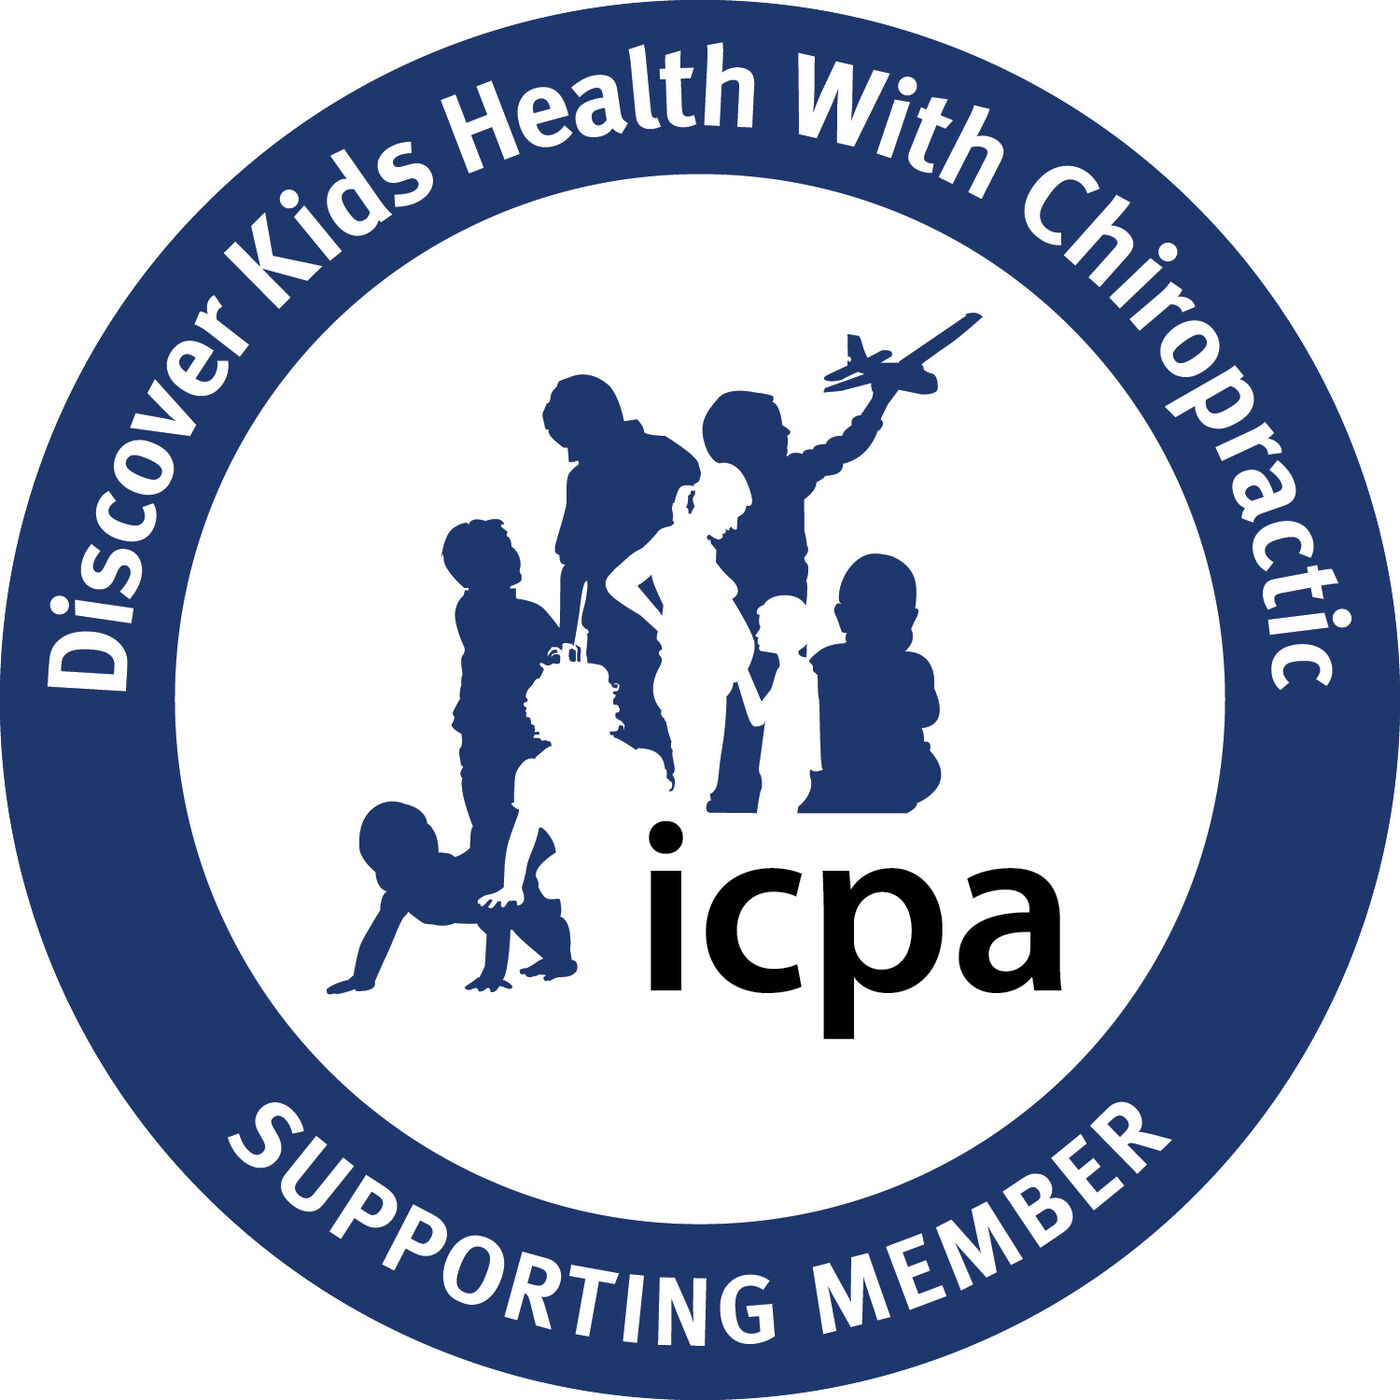 Chiropractic Pediatric Certification